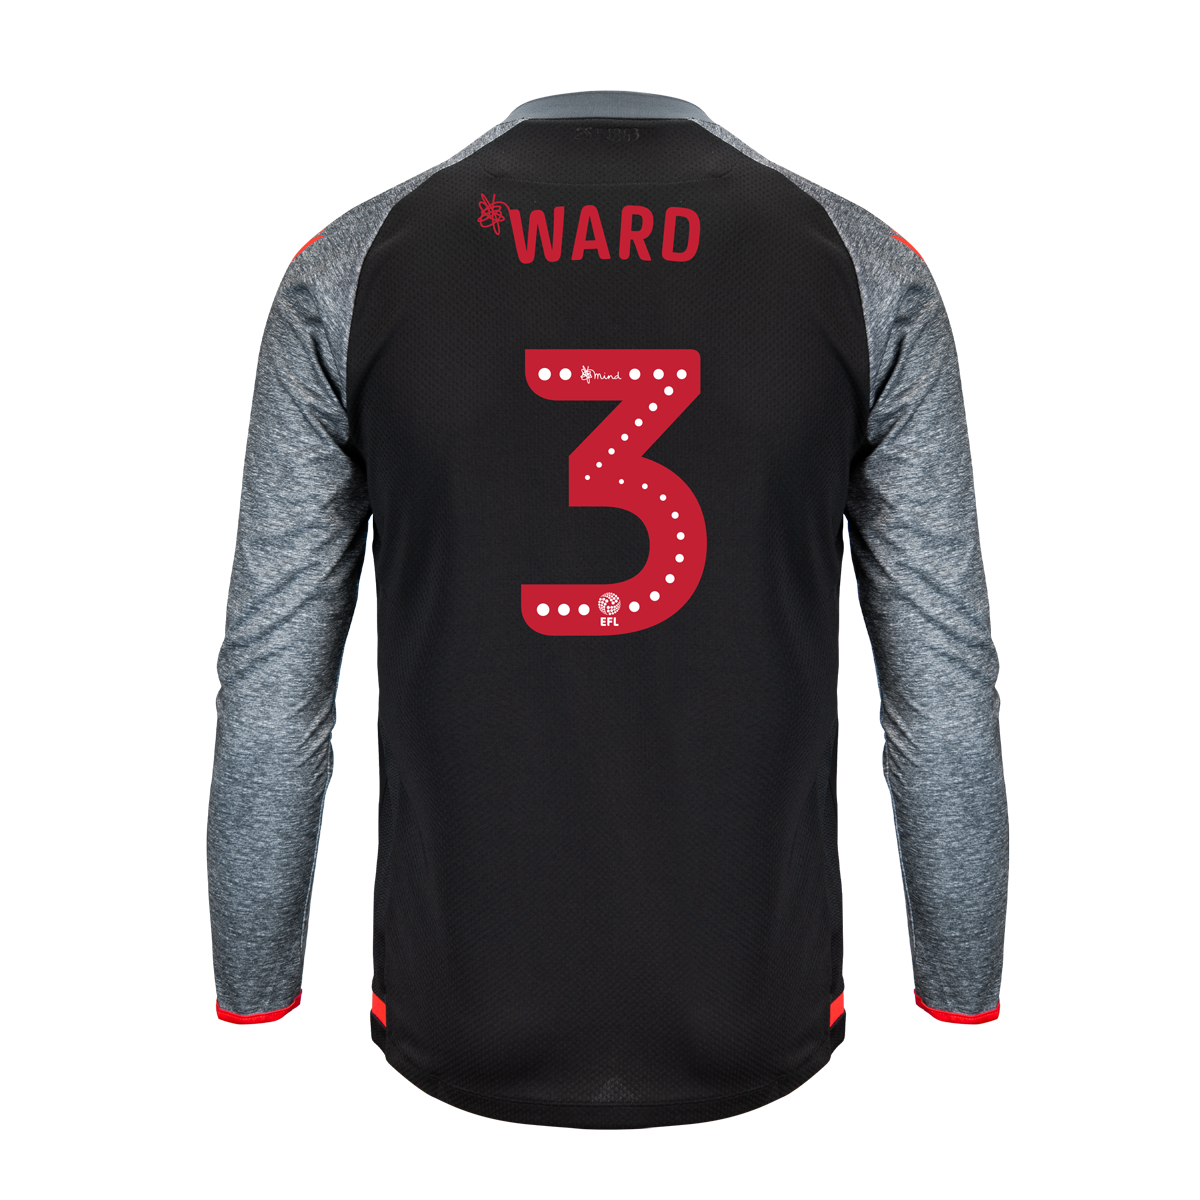 2019/20 Adult Away LS Shirt - Ward